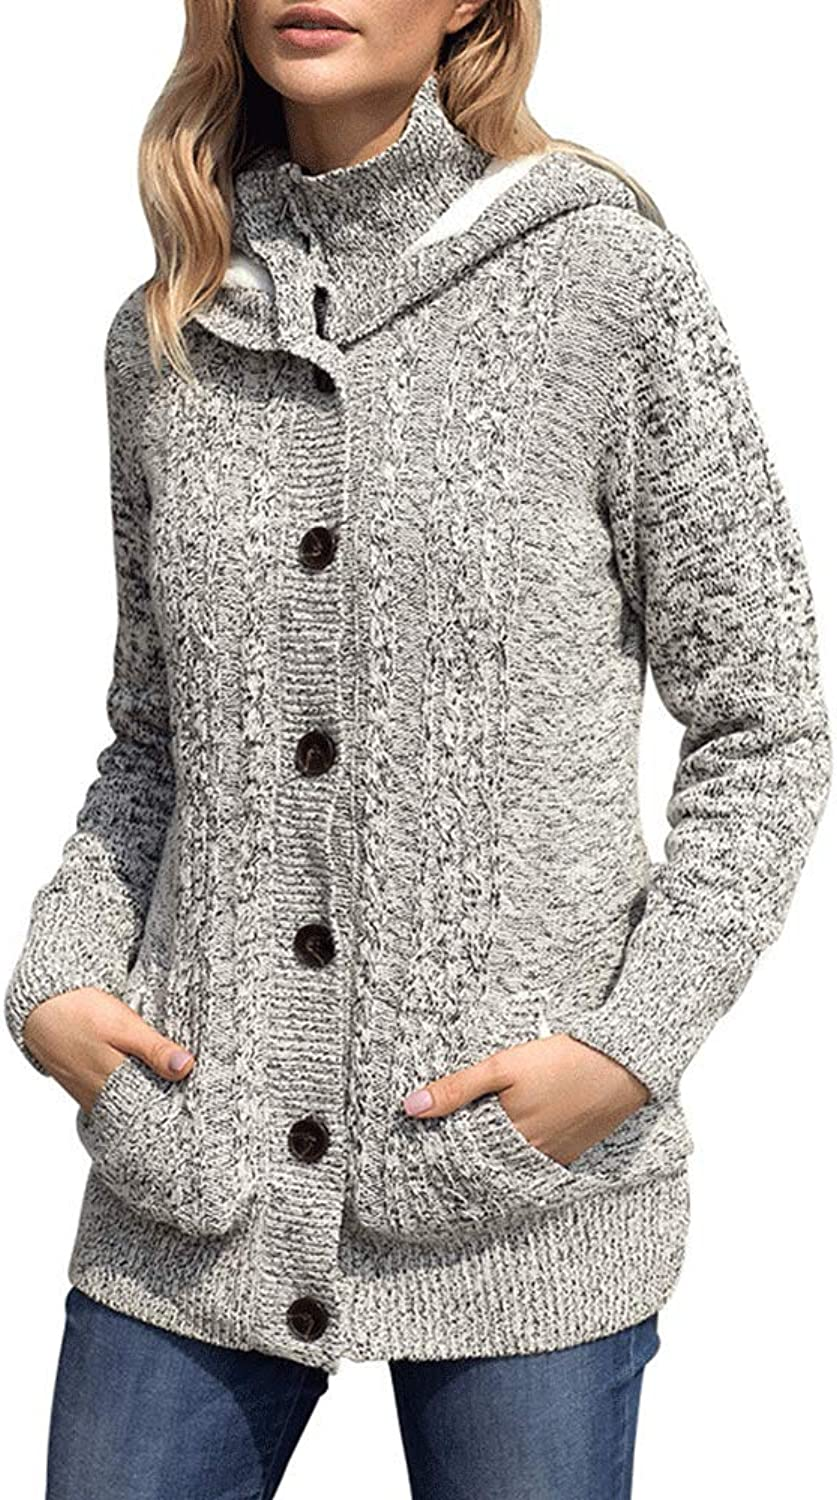 EVEDESIGN Women's Hooded Cable Knit Cardigan Fashion Button Down Fleece Lined Sweater Coat